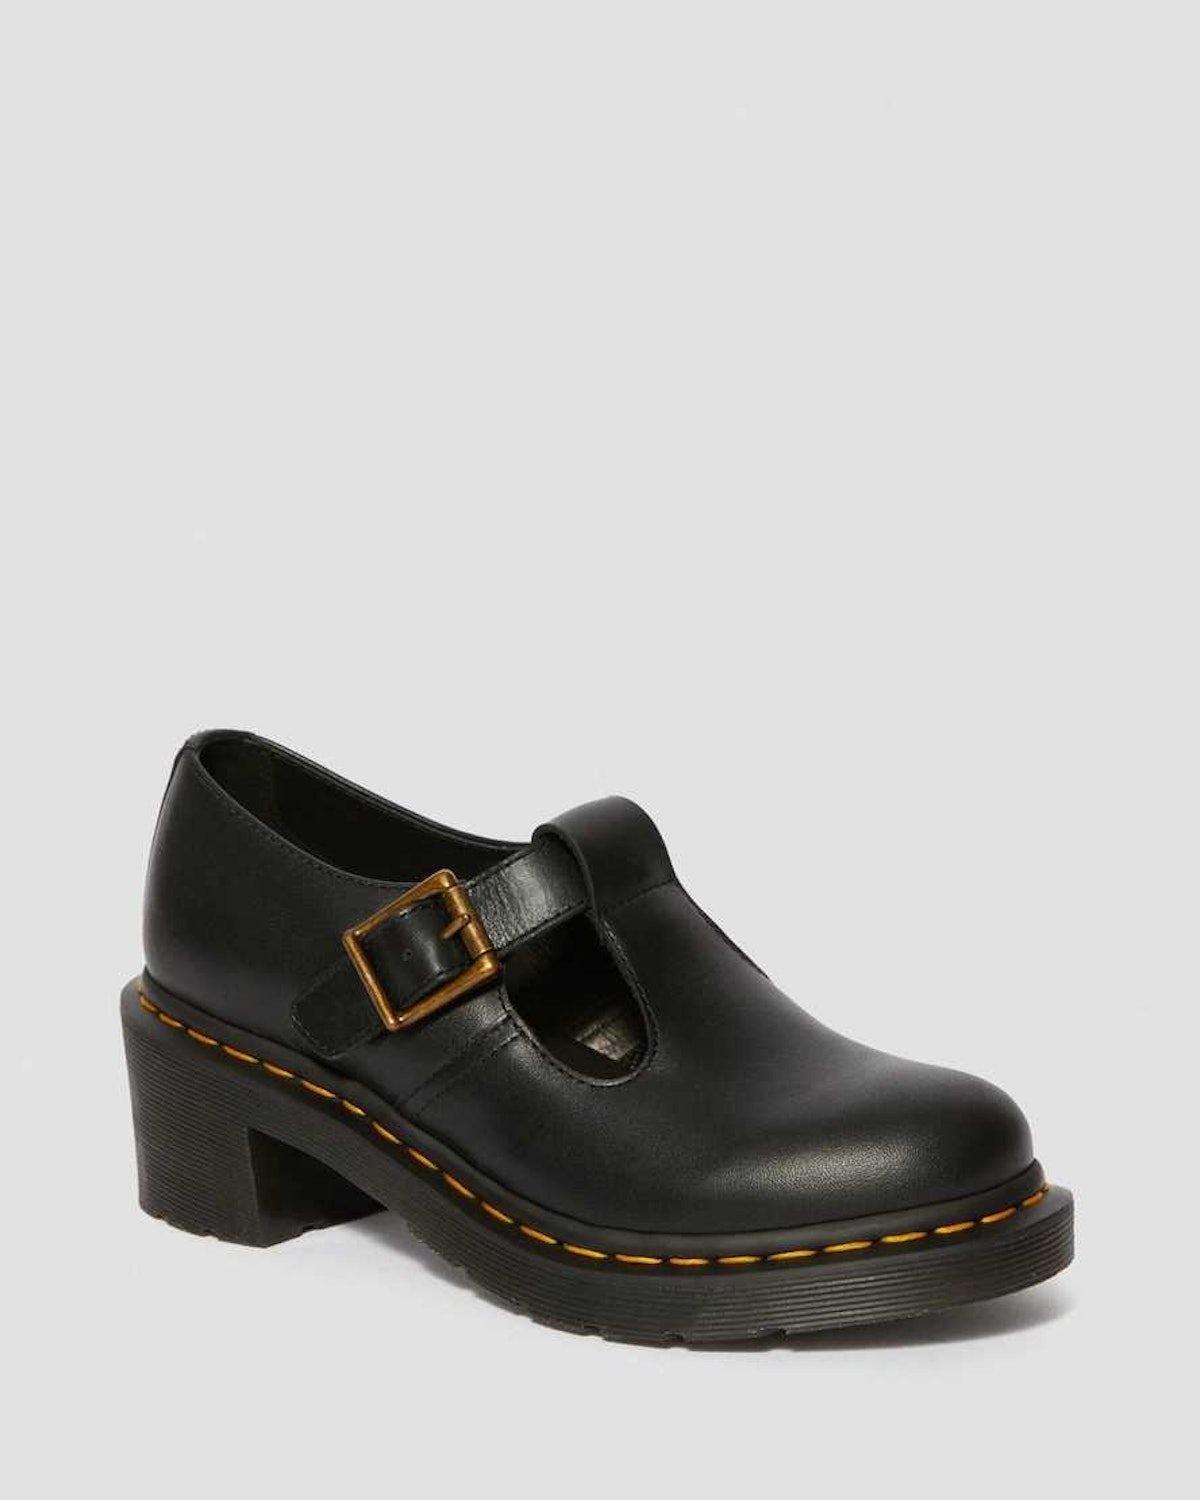 Dr. Martens Sophia Women's Leather Heeled Mary Jane Shoes